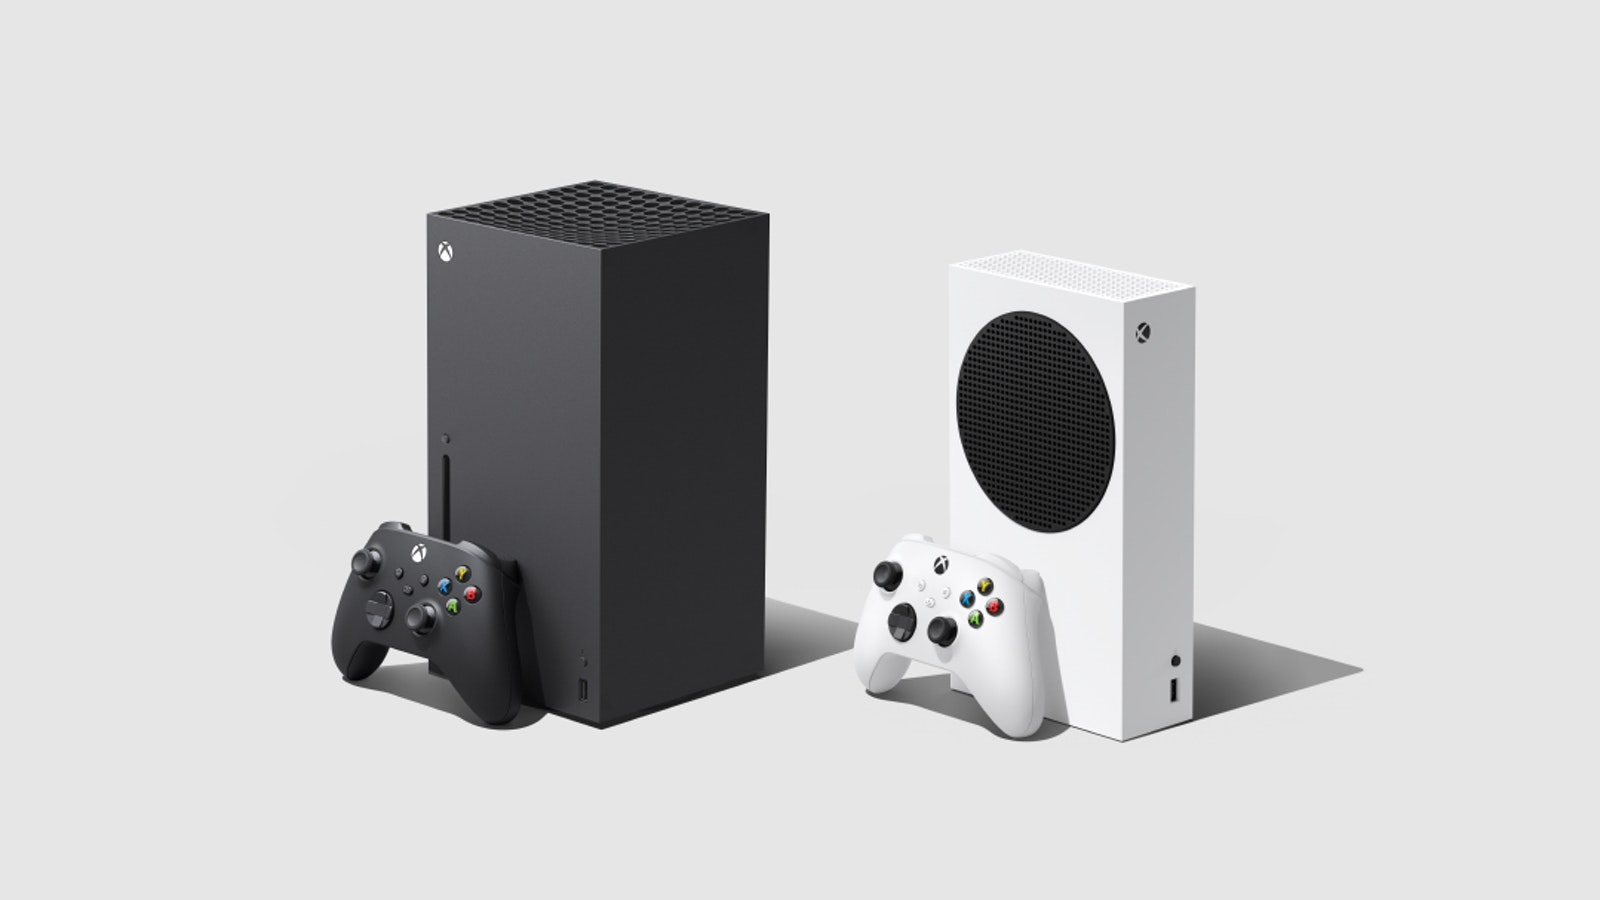 Microsoft's Xbox Series X and S consoles. Photo by Microsoft